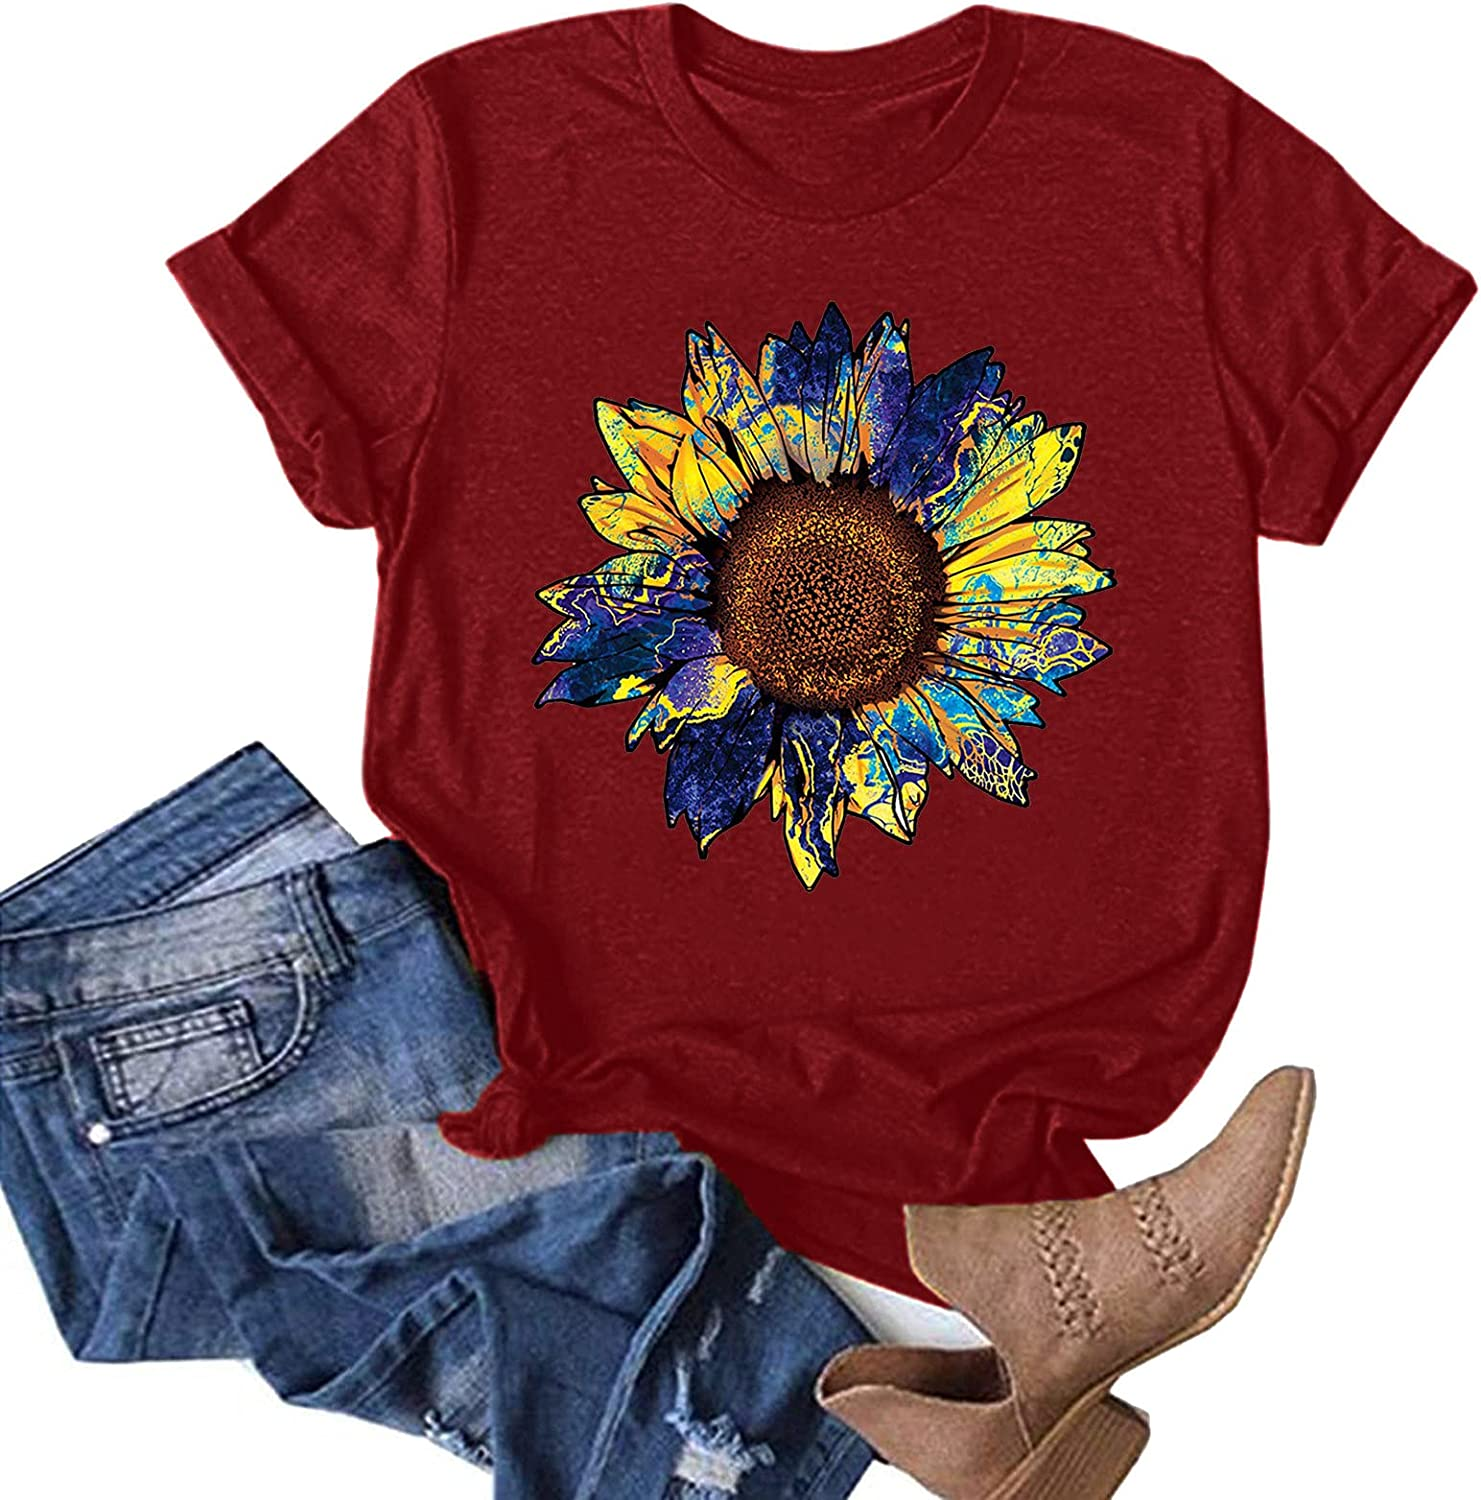 AODONG Tee Shirts for Women Loose Fit, Women's Summer Tops Sunflower Printed Funny Graphic T-Shirts Blouses Tunic Tees